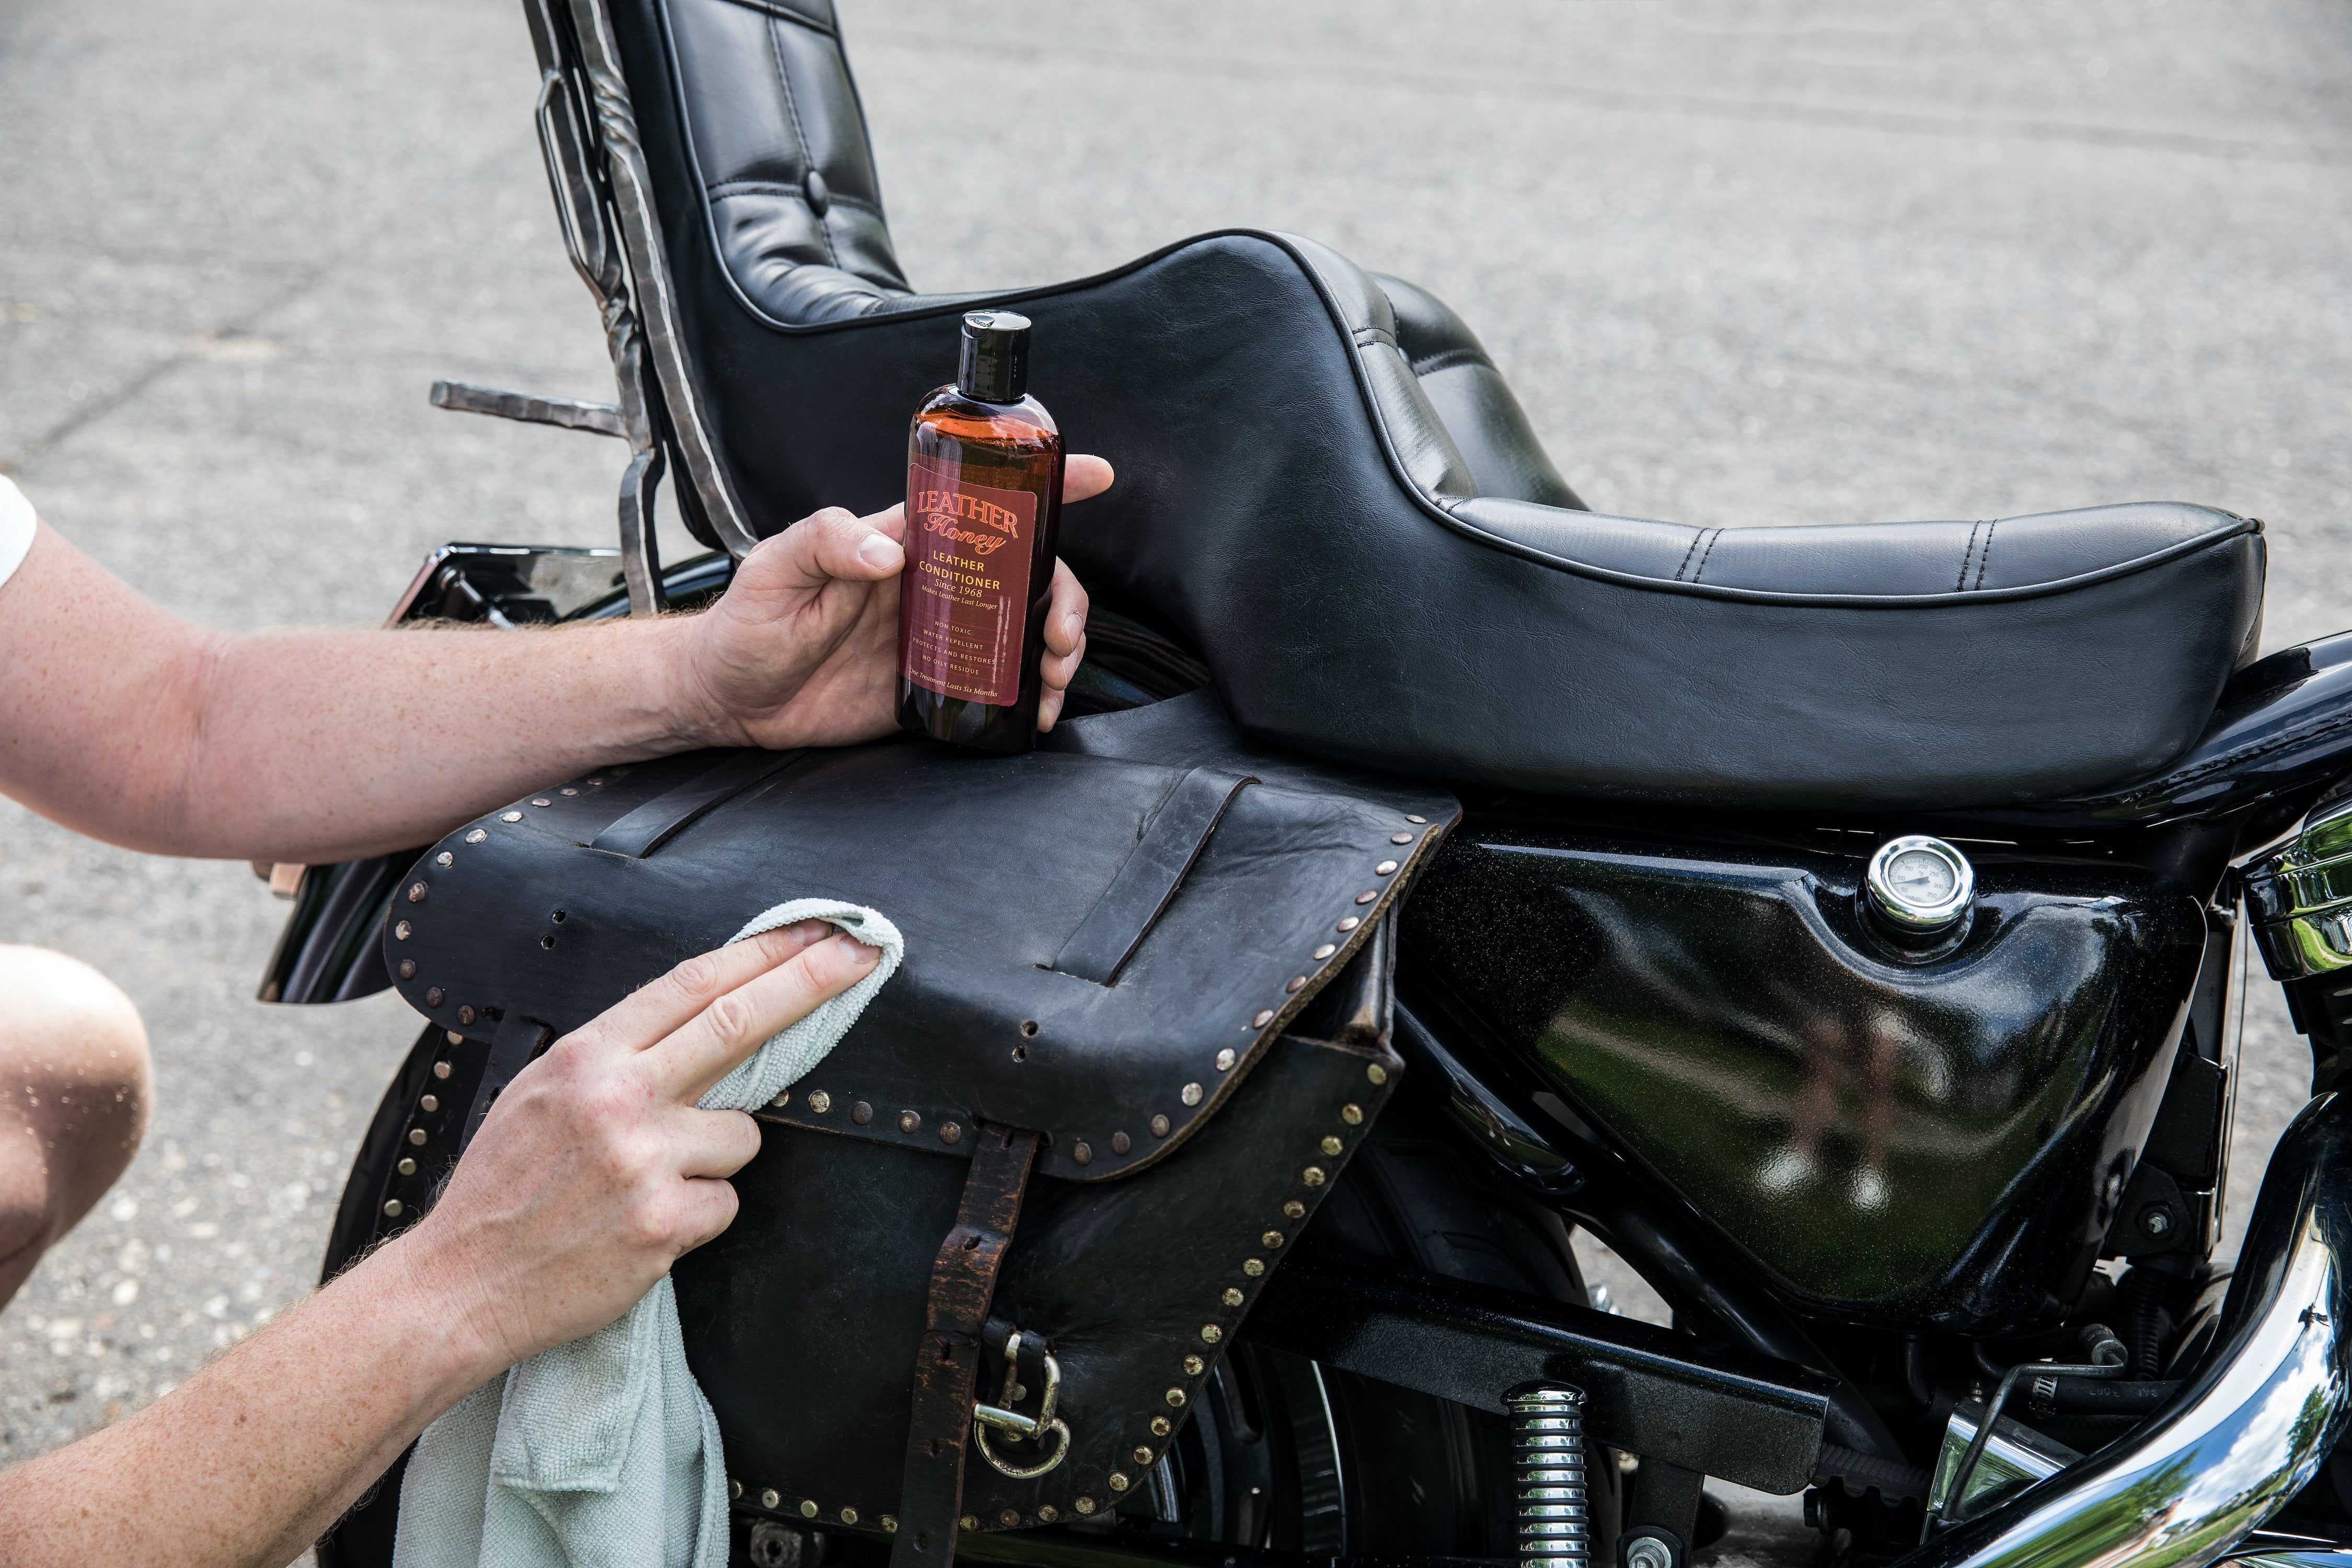 How to Care for Leather Seats and Motorcycle Accessories